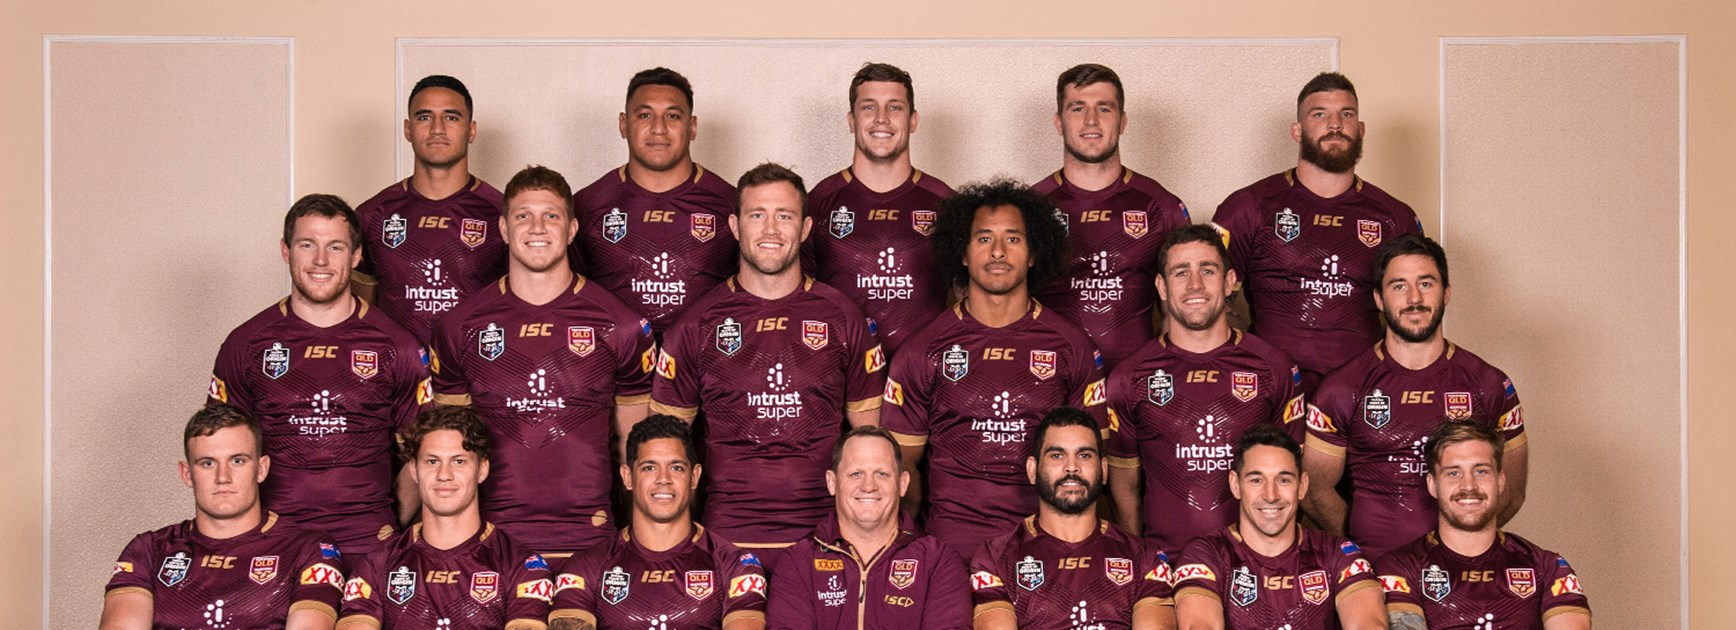 Official Game II Maroons team photo